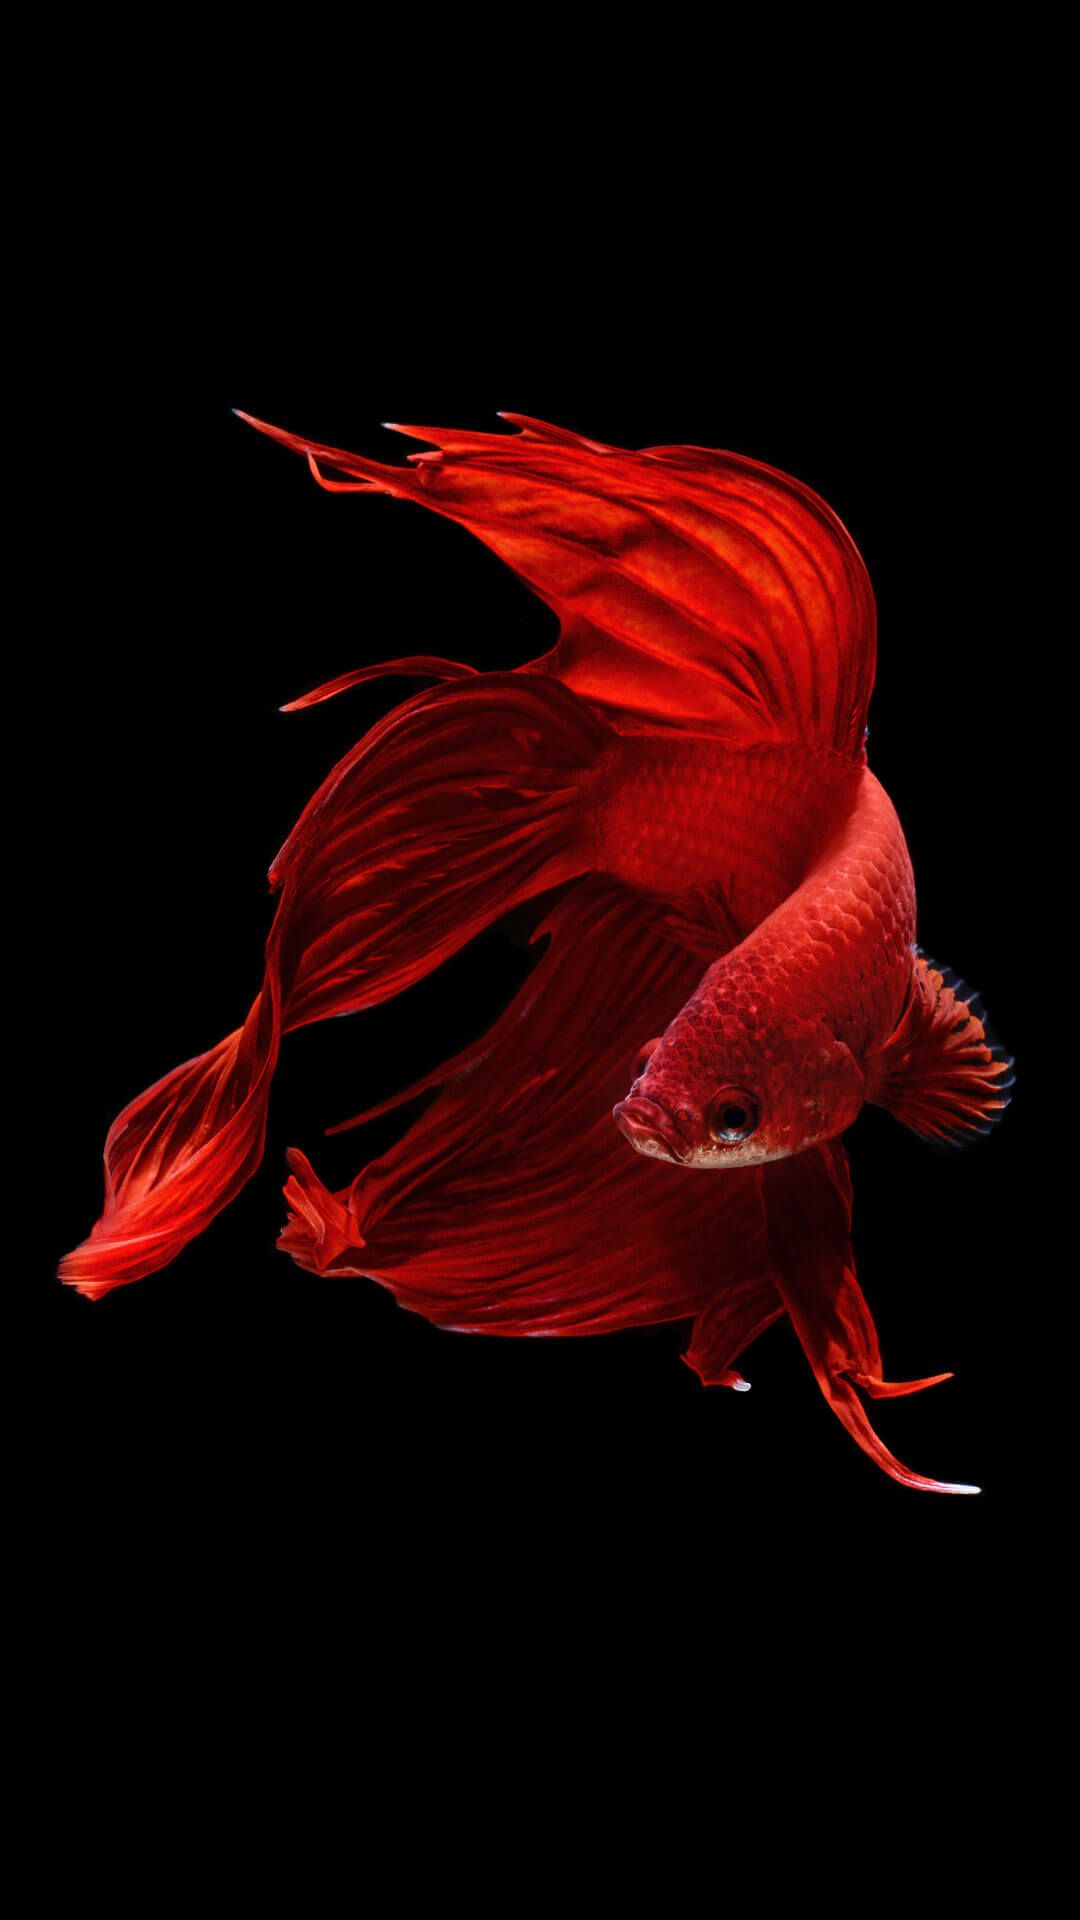 Betta Fish iPhone 6 And iPhone 6s Wallpaper HD | Animal Wallpaper for iPhone | Fish wallpaper ...